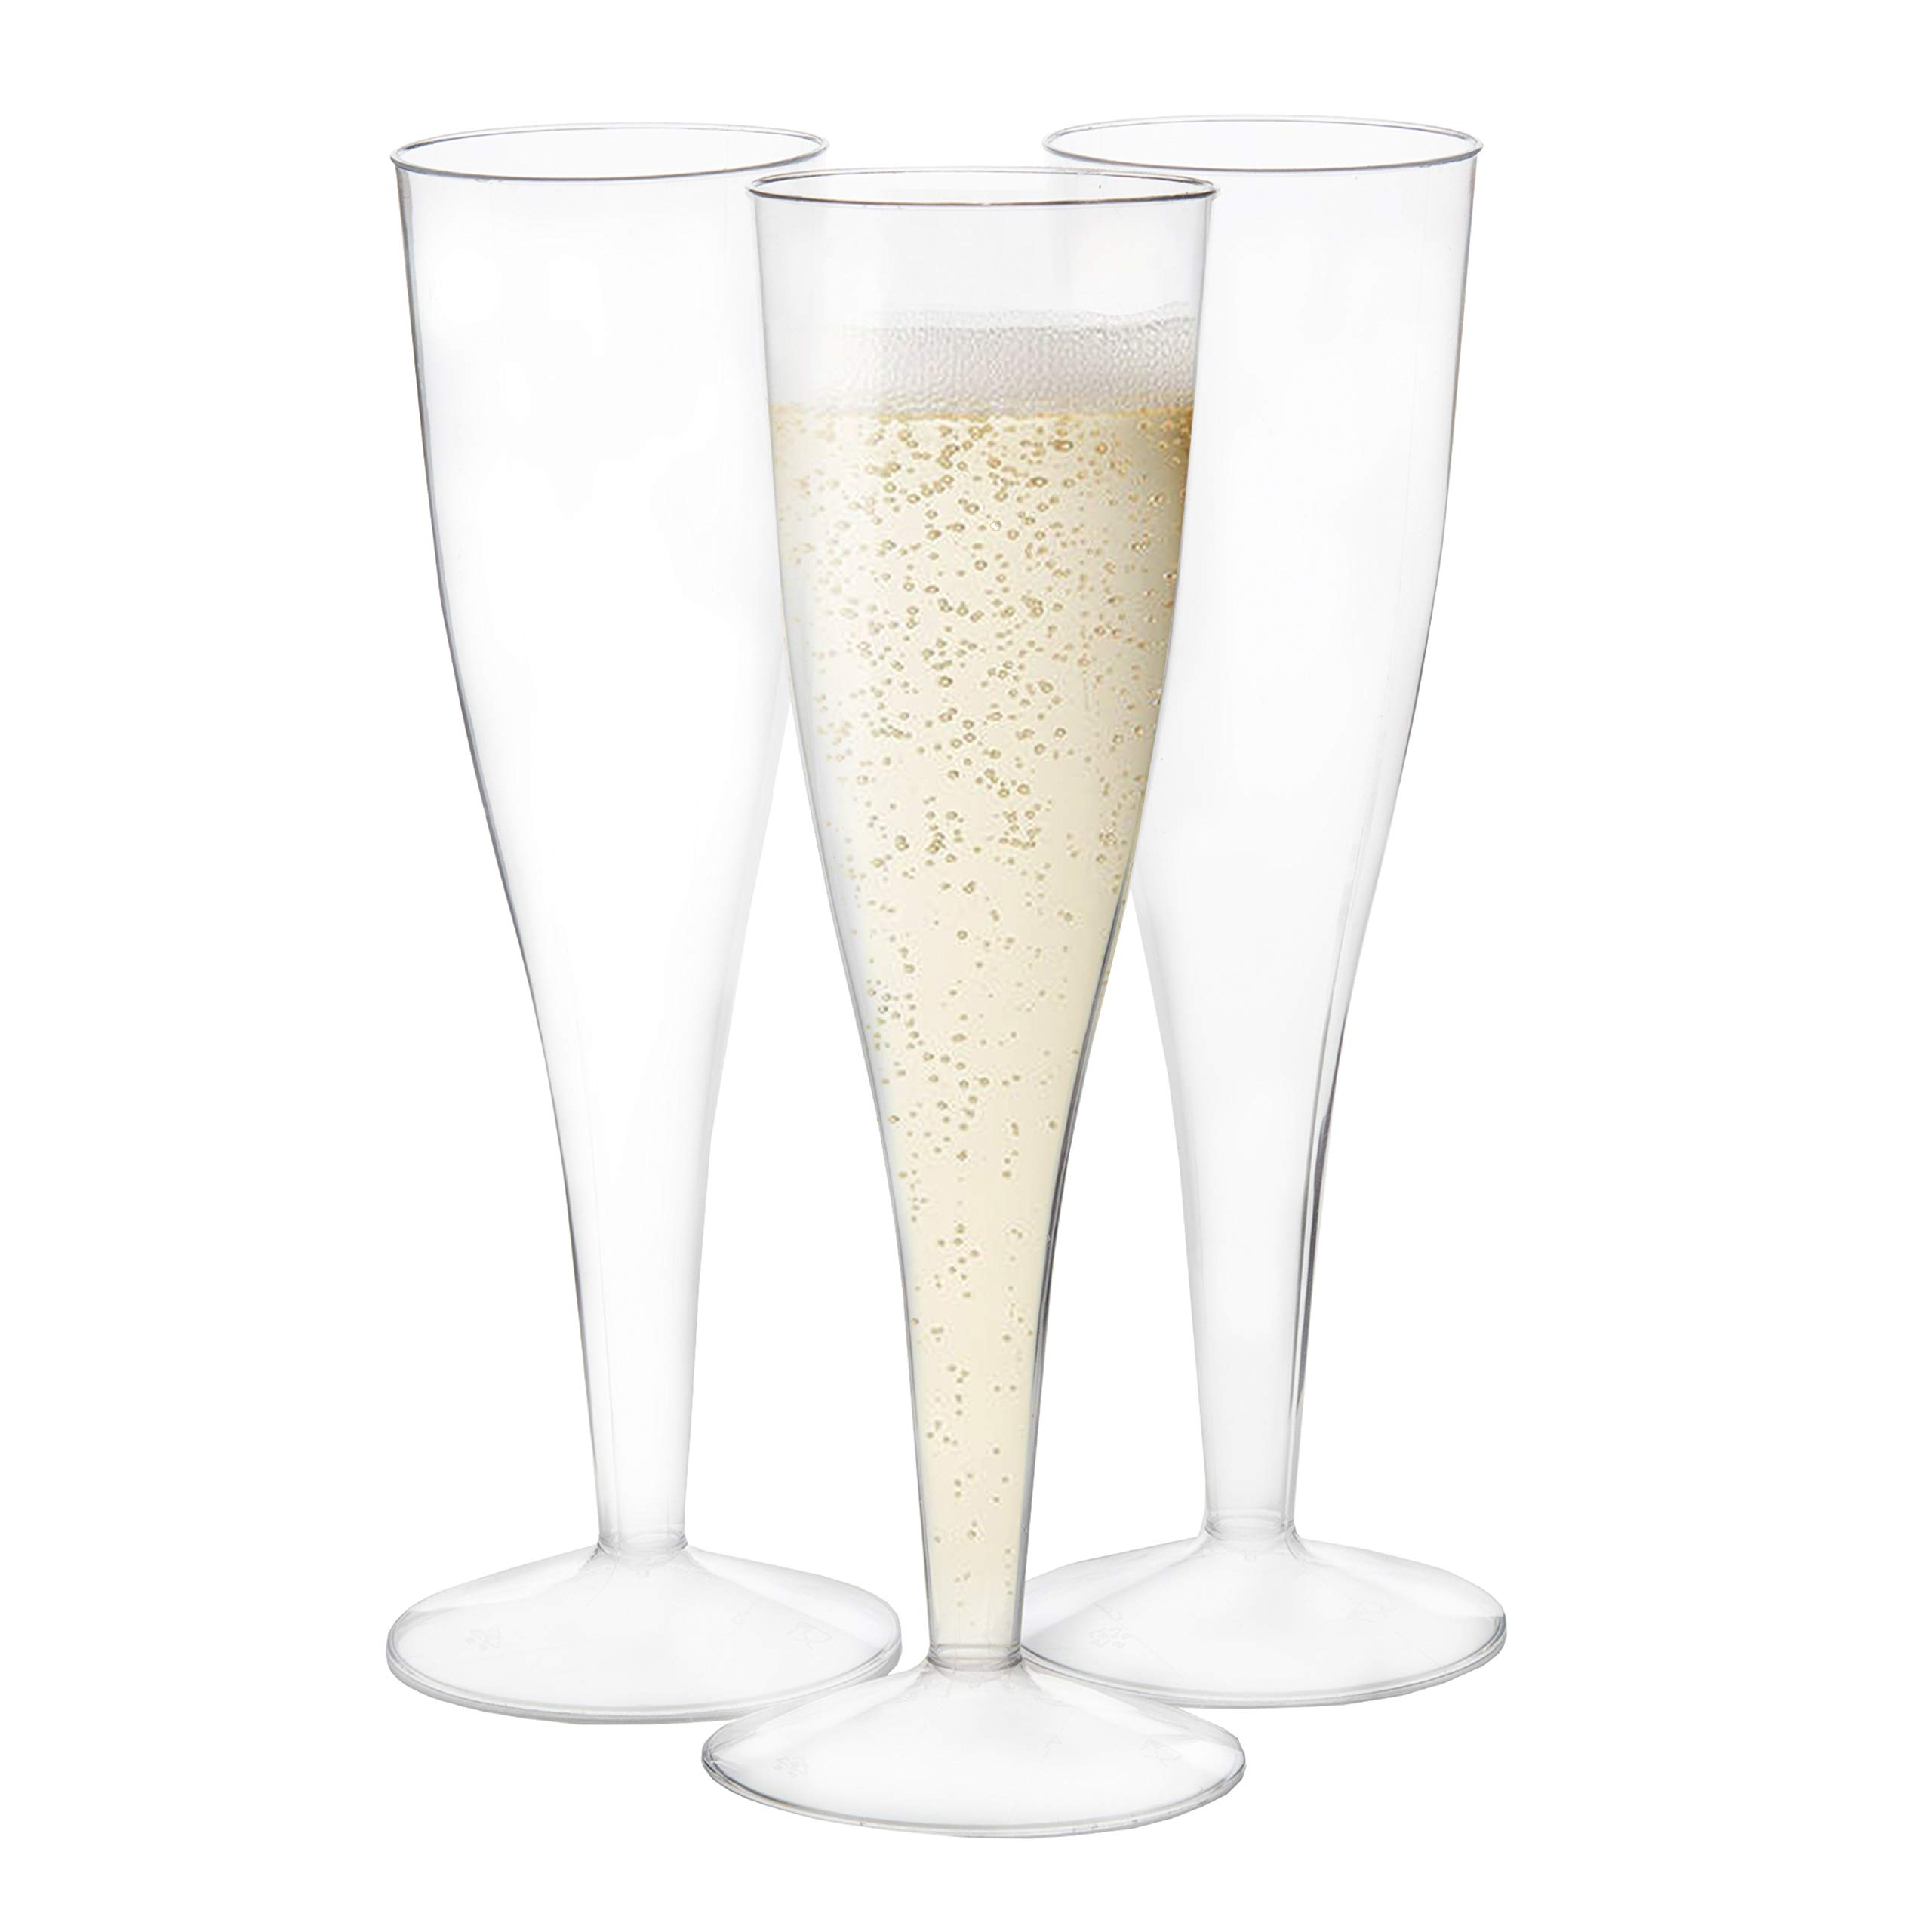 72 Premium Plastic Champagne Flutes - Bulk One Piece Champagne Glasses for Wedding or Party